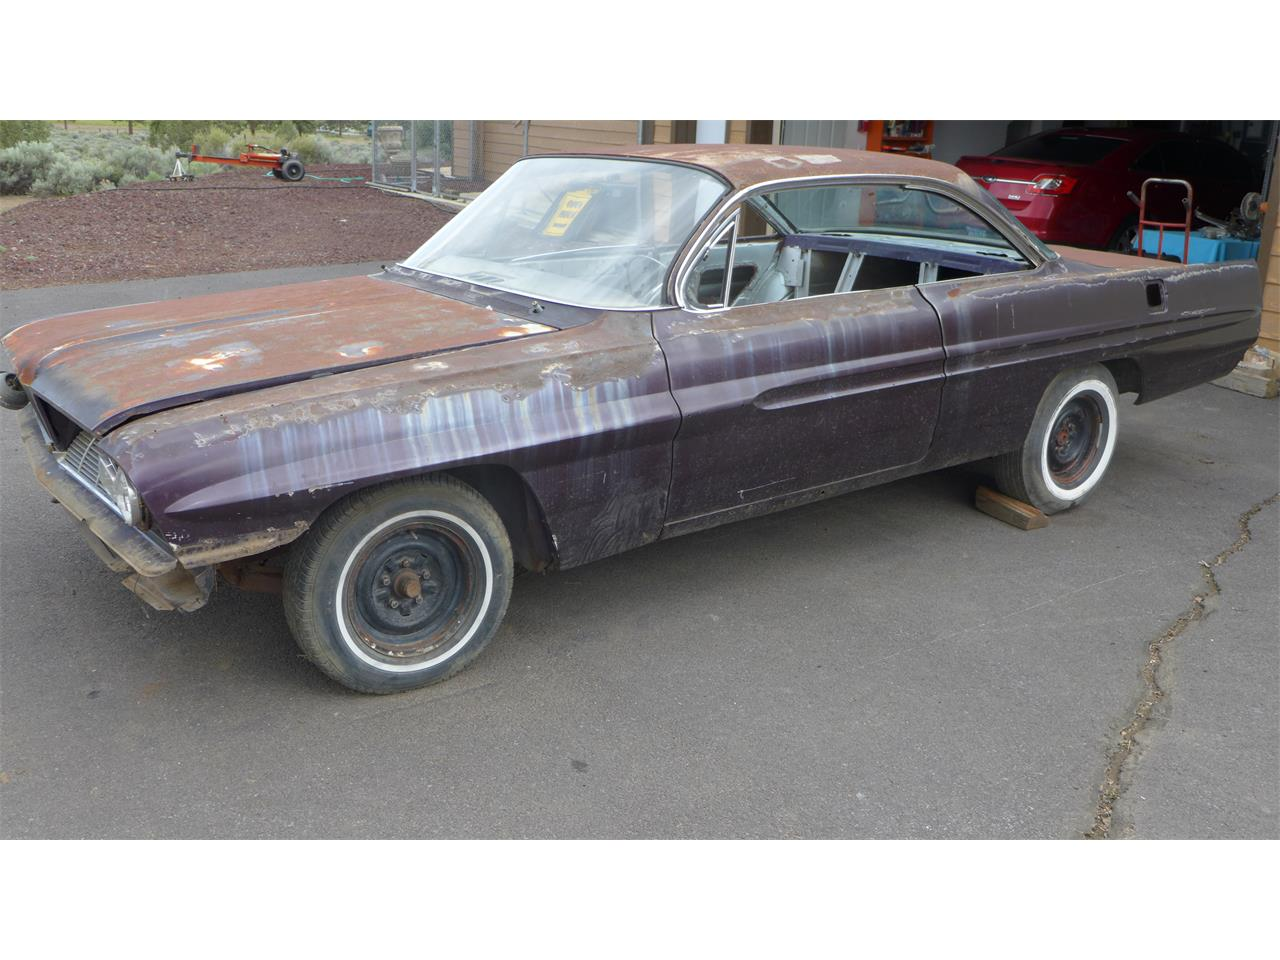 For Sale: 1961 Pontiac Ventura in Bend, Oregon